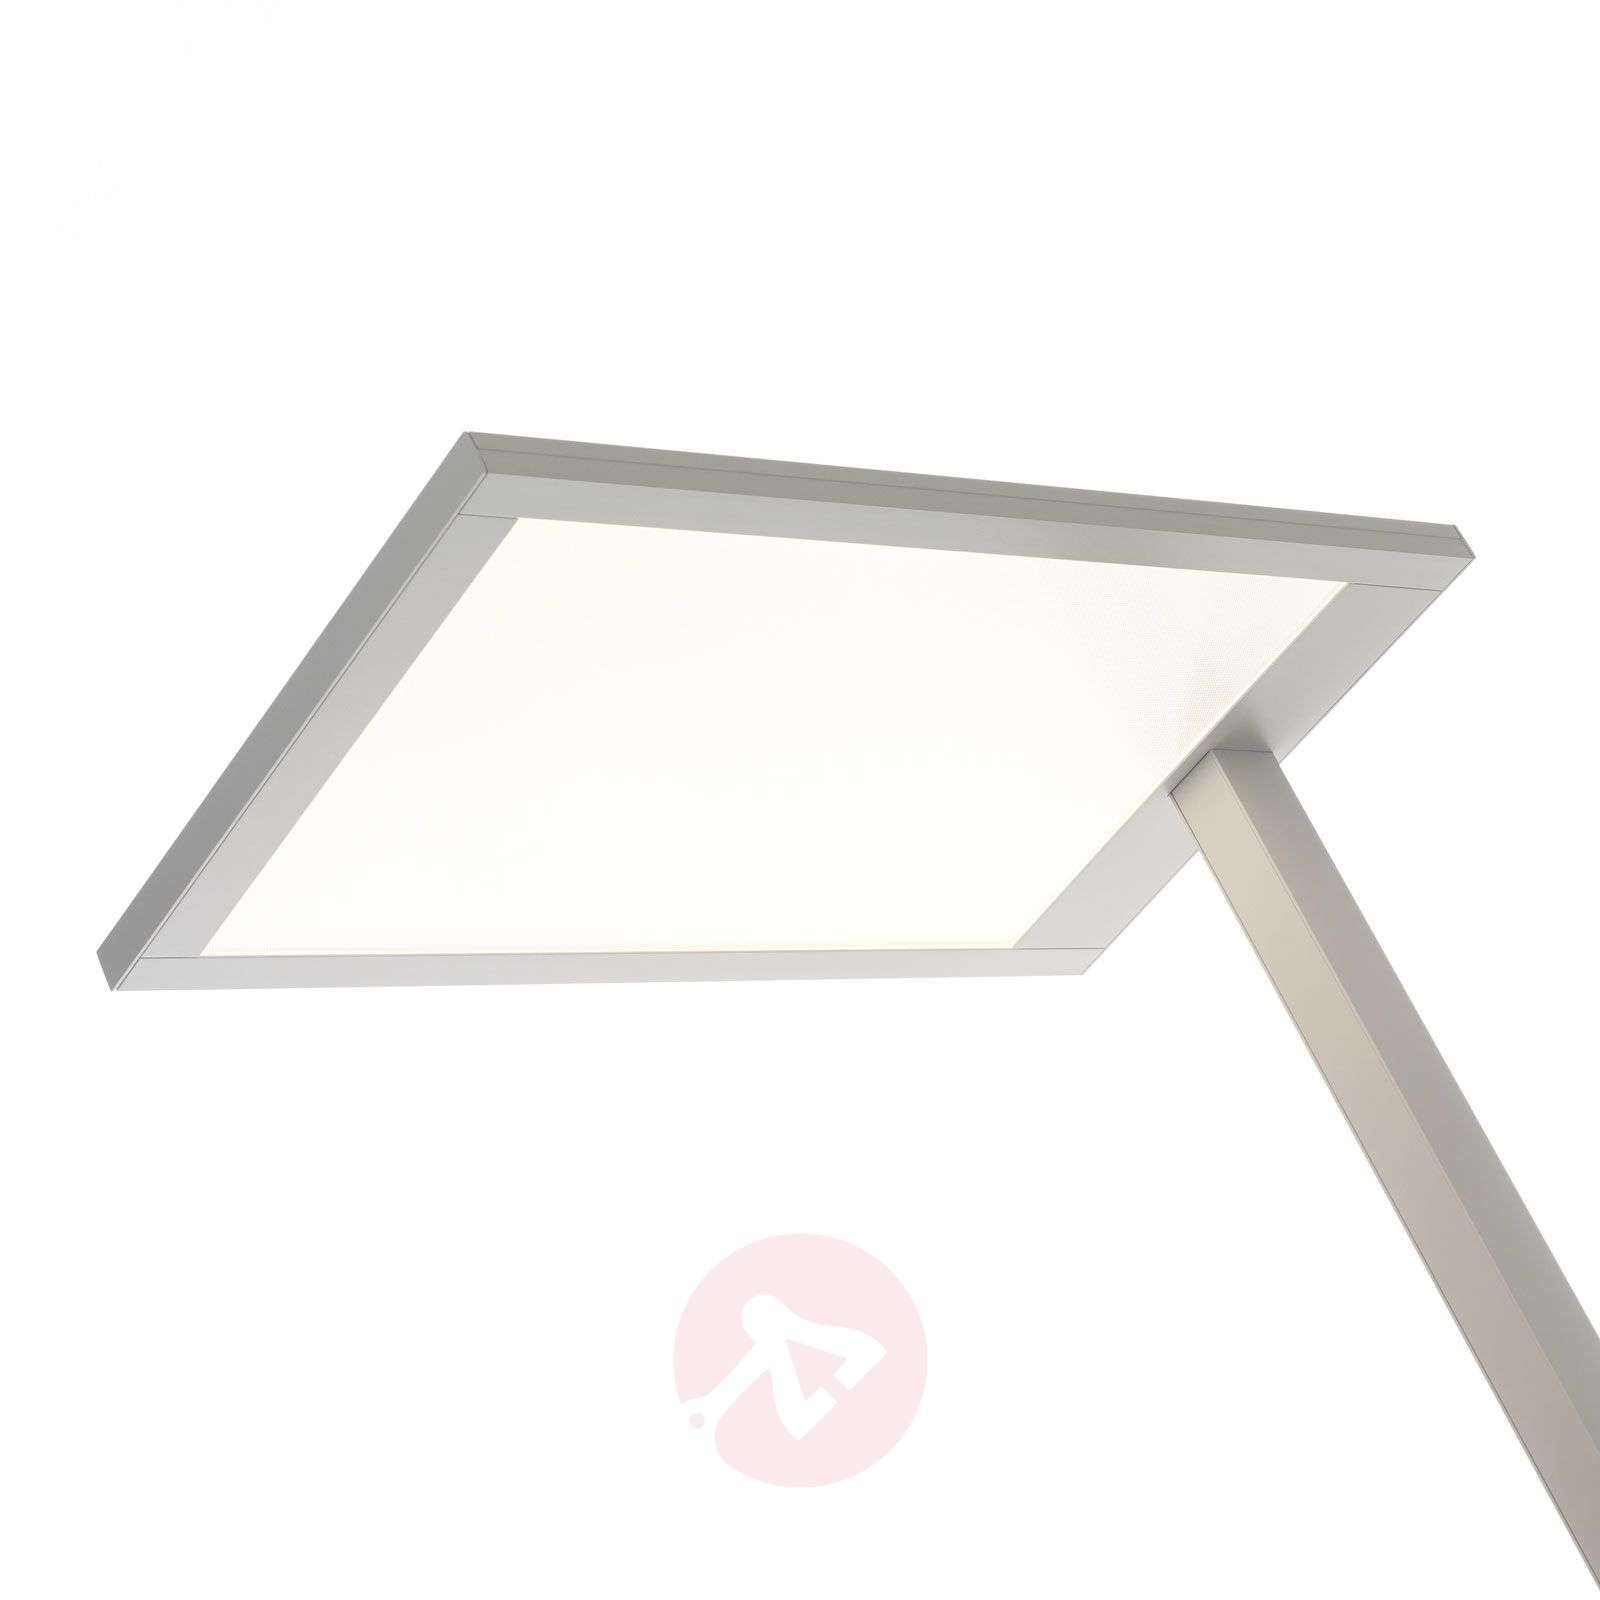 LED vloerlamp Javier, dimmer, direct-indirect-3056018-01